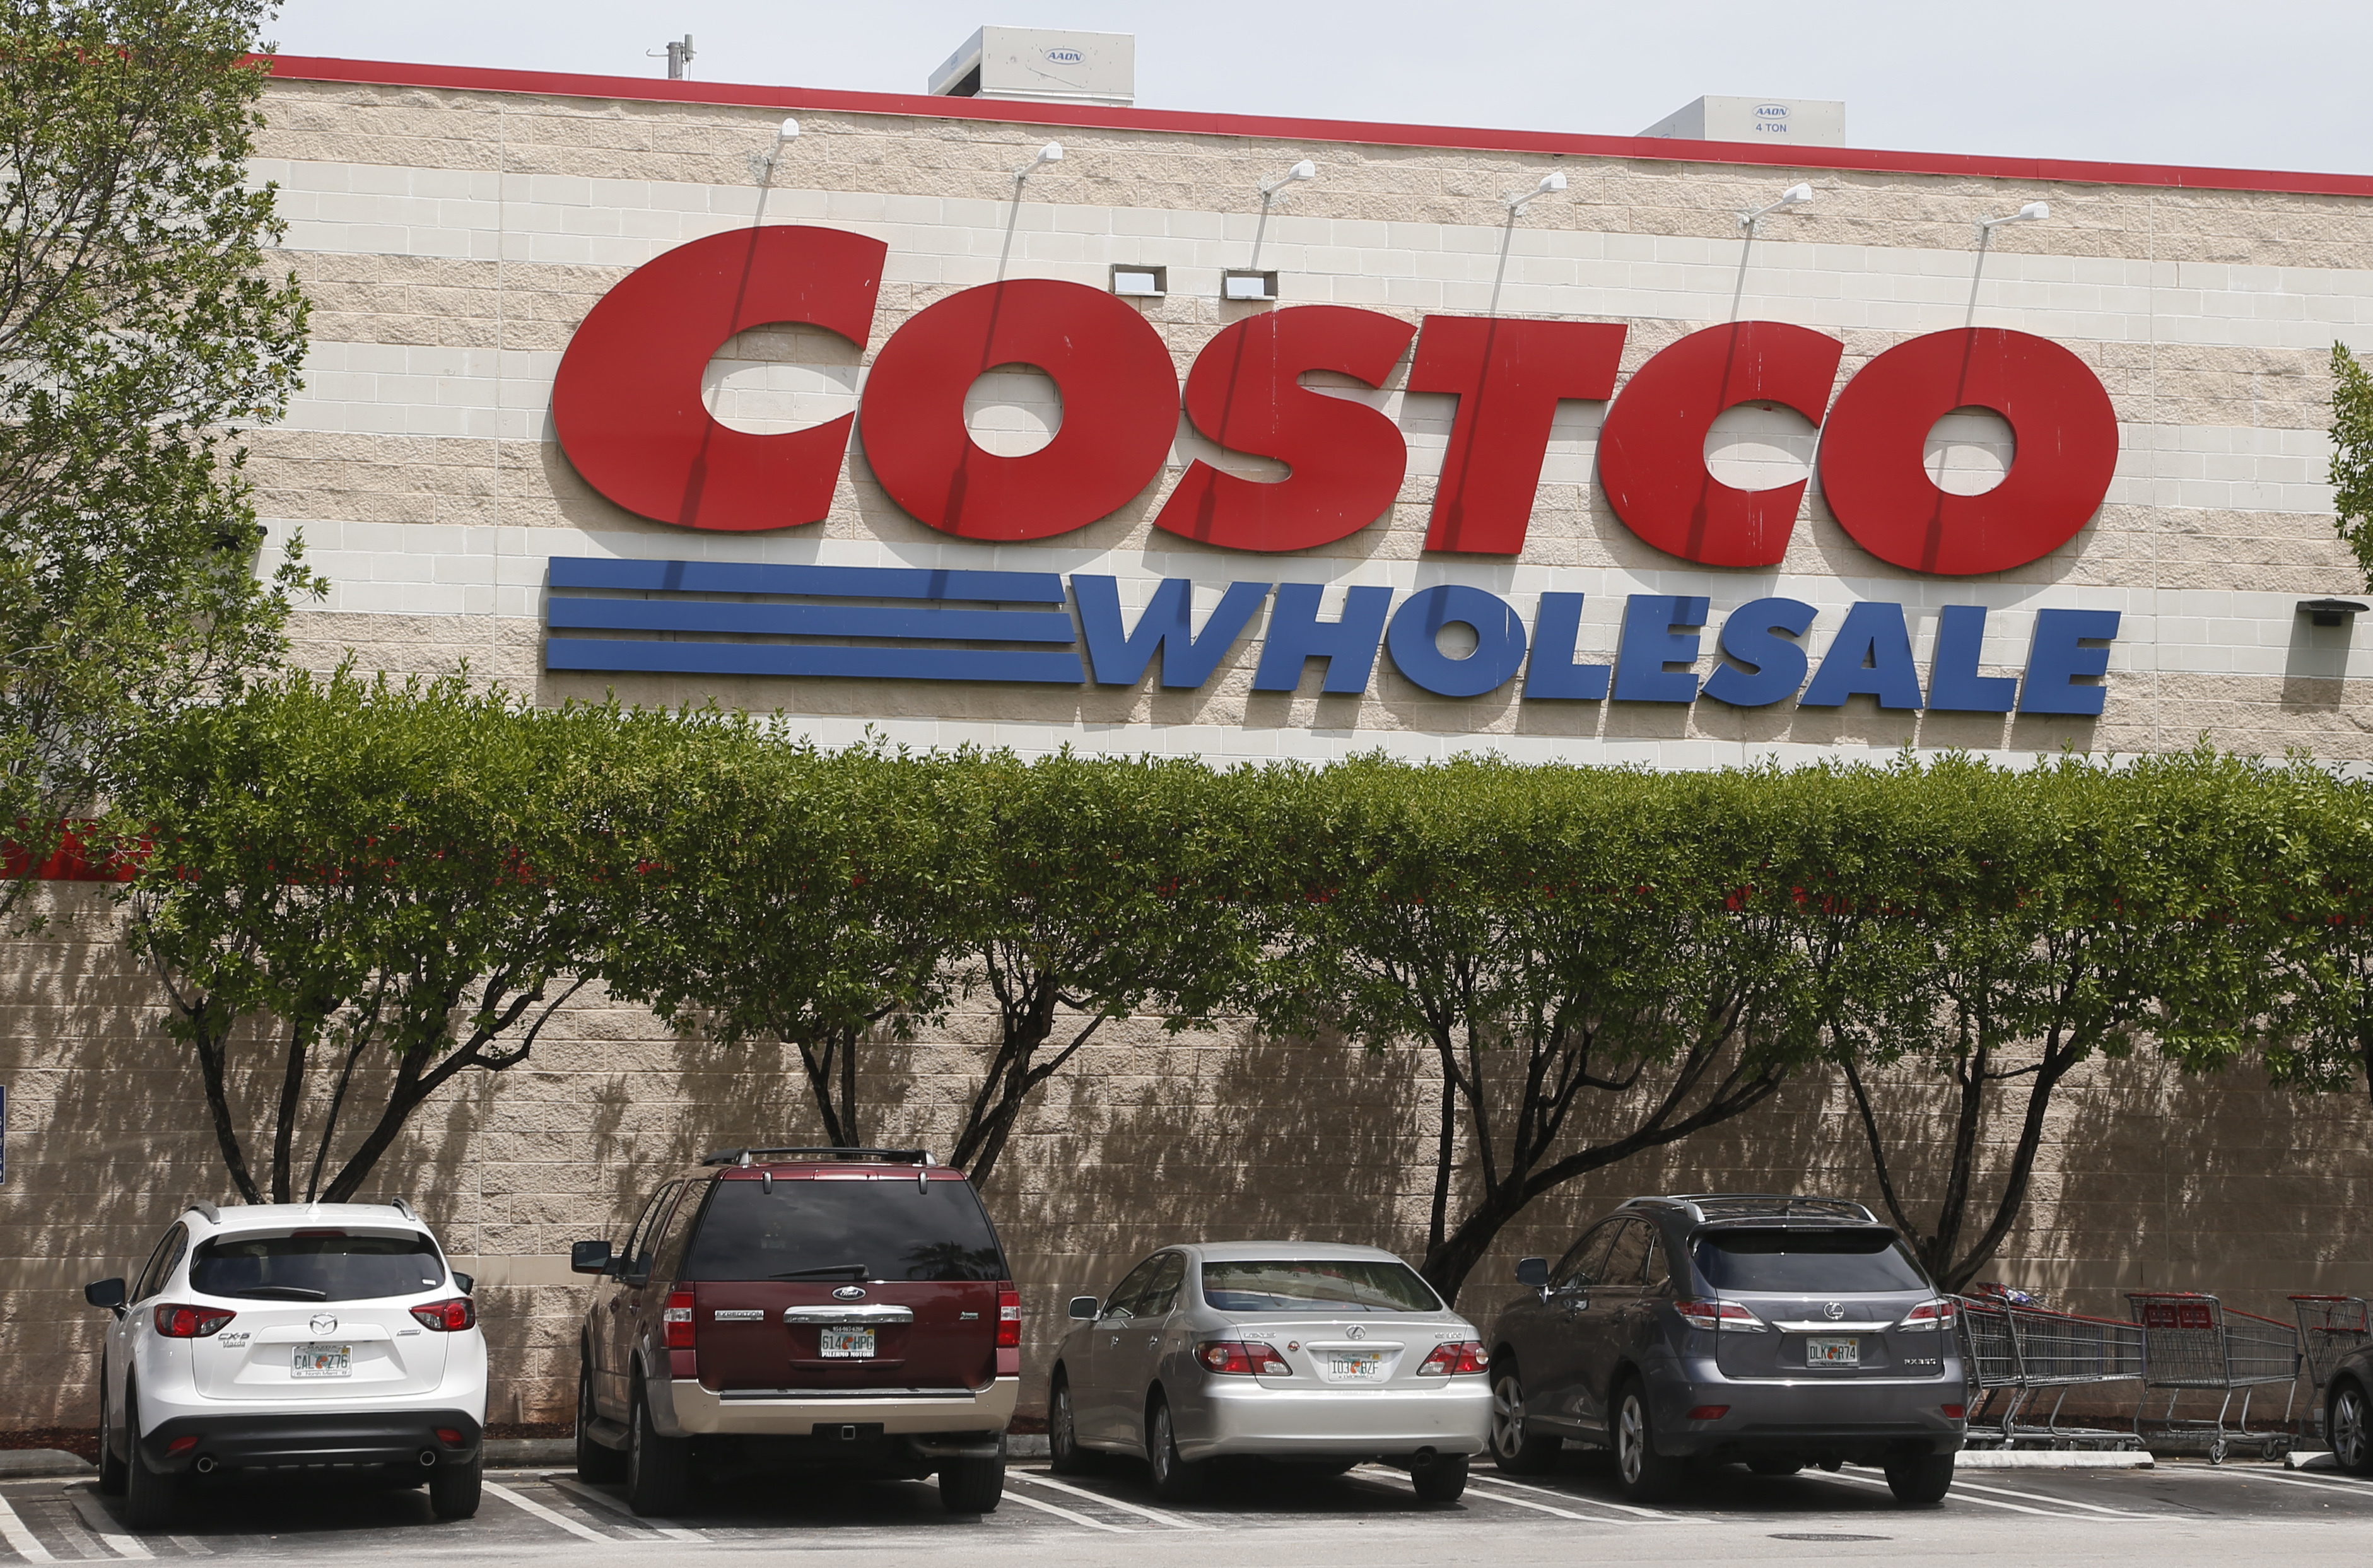 With nearly $1B in development nearby, this town was hoping for a Costco. But it's still a no-go